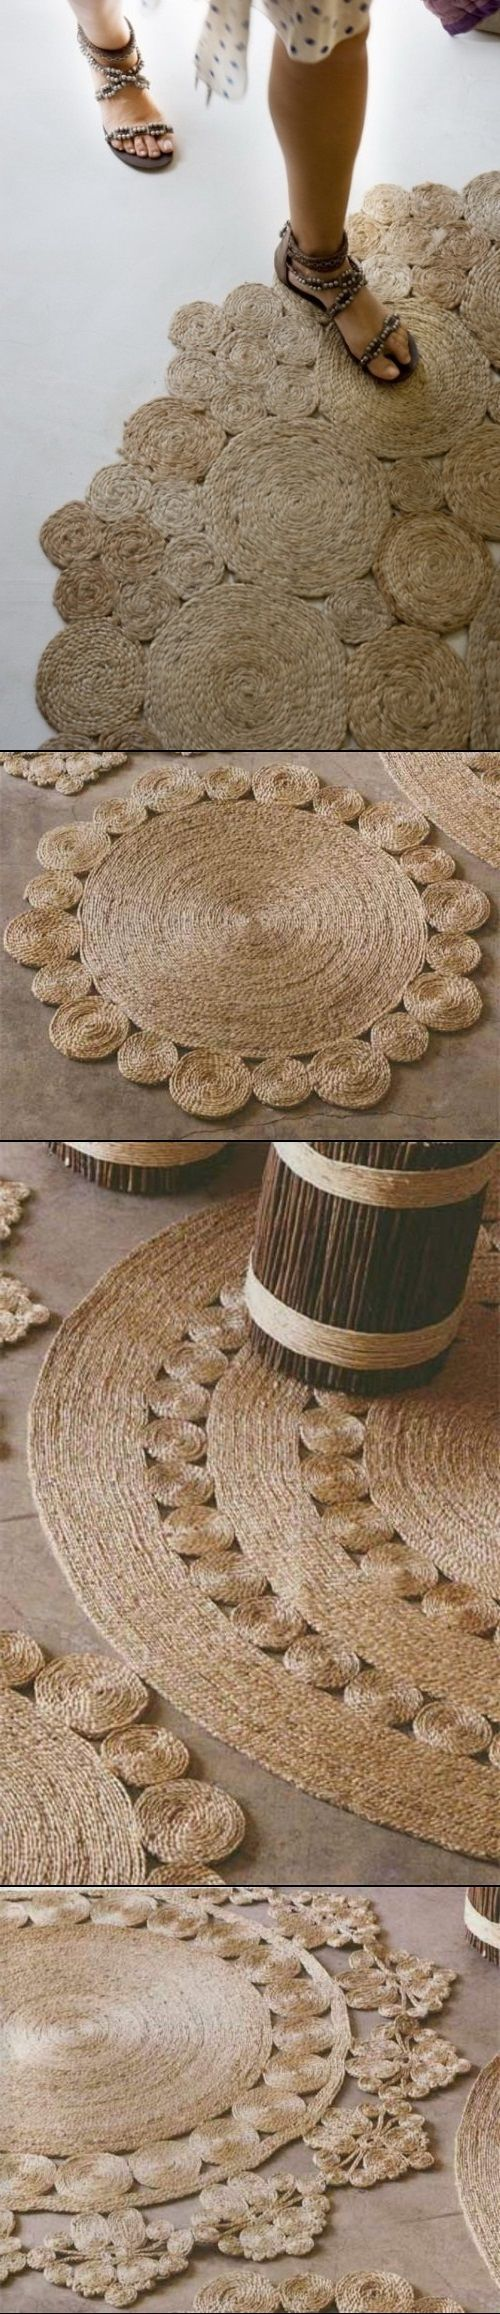 DIY Rustic Rug Of Rope